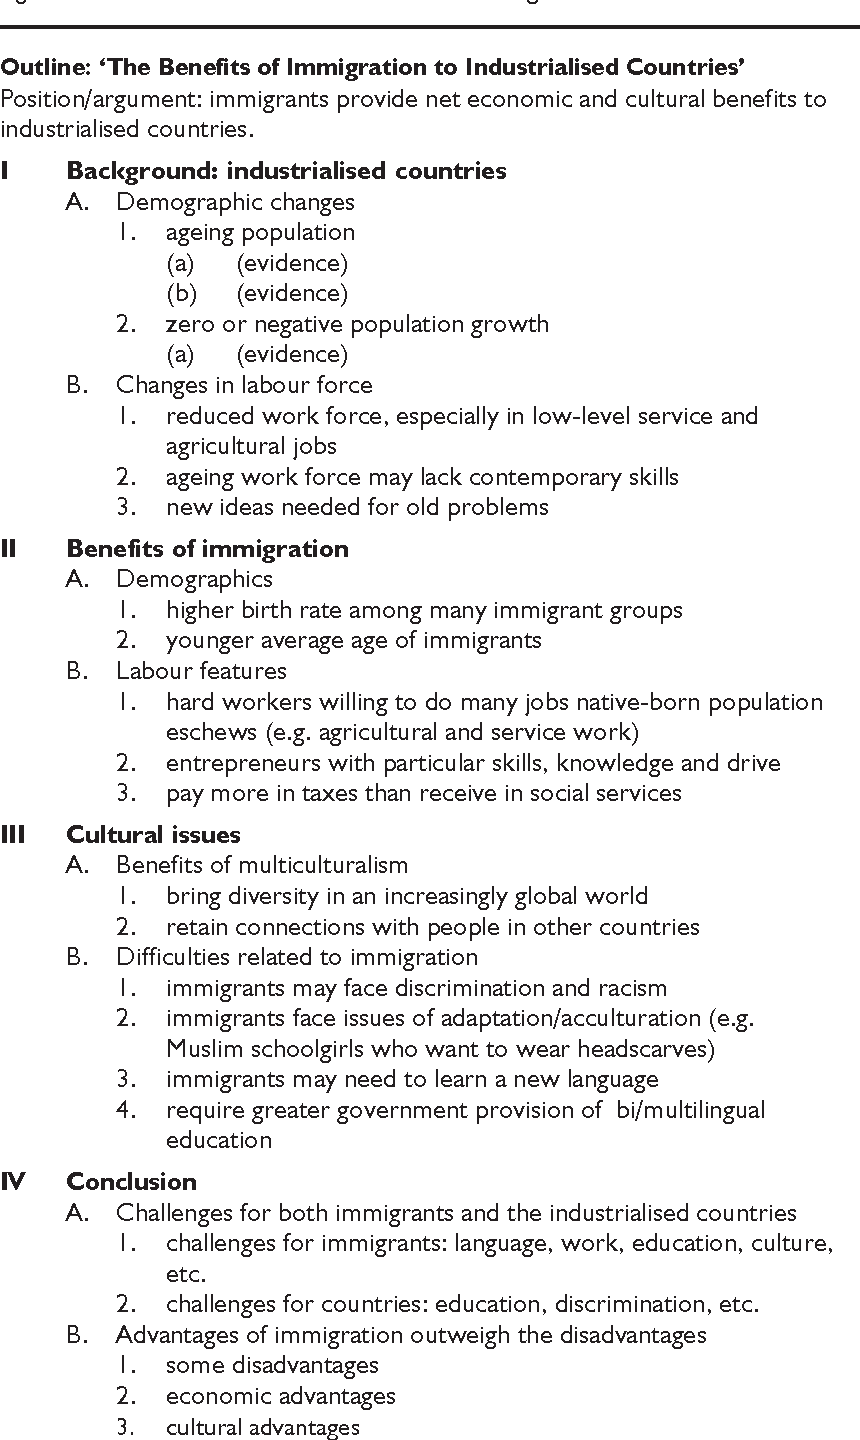 Figure 2.9 Outline on the economic benefits of immigration